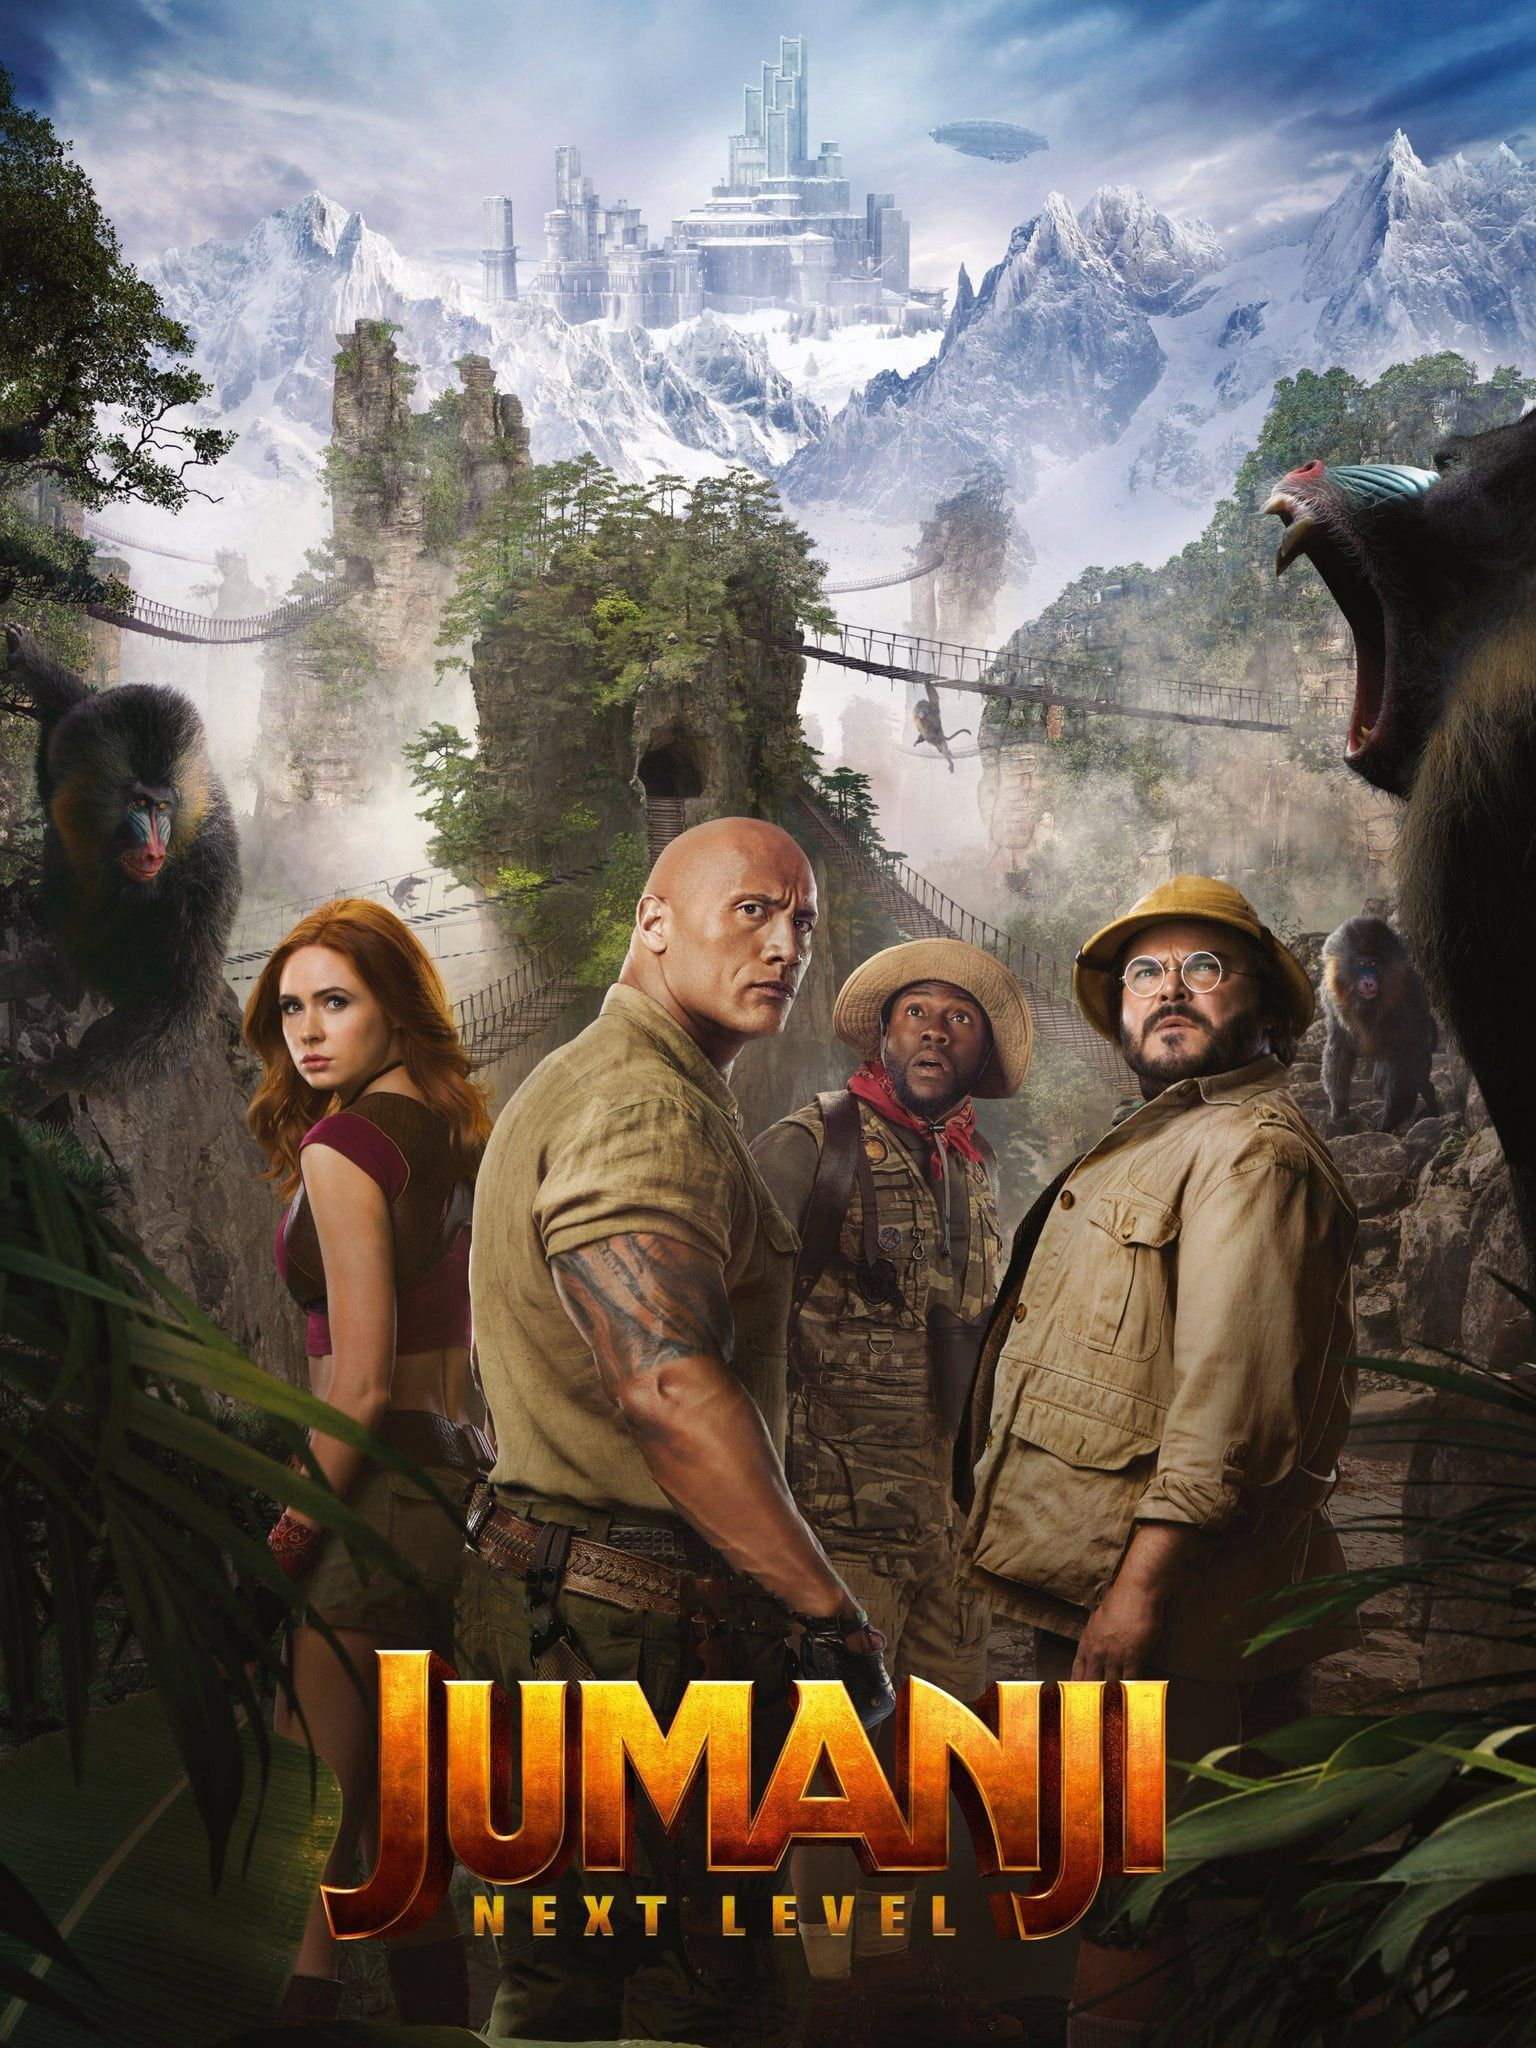 Watch Jumanji 2 The Next Level Dual Audio English And Hindi Dubbed In 2020 Download Movies Movies Online Free Movies Online